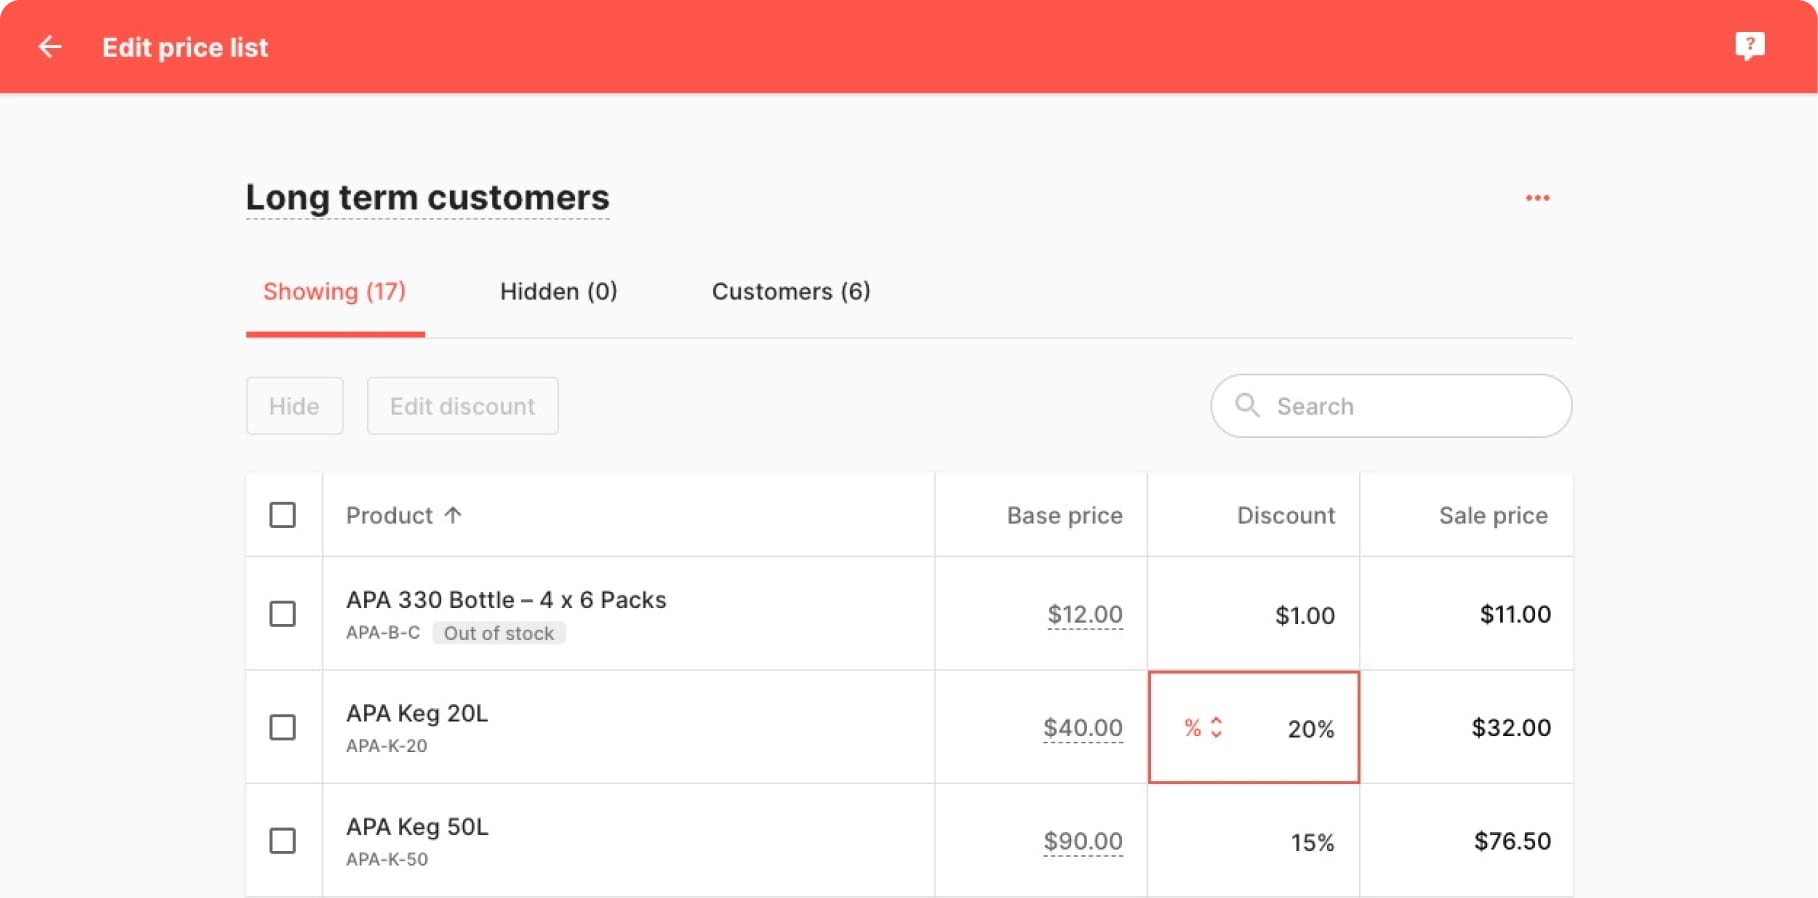 Editing the discount within a price list – you can edit by % or $ values, bulk edit prices, as well as hide or show products.